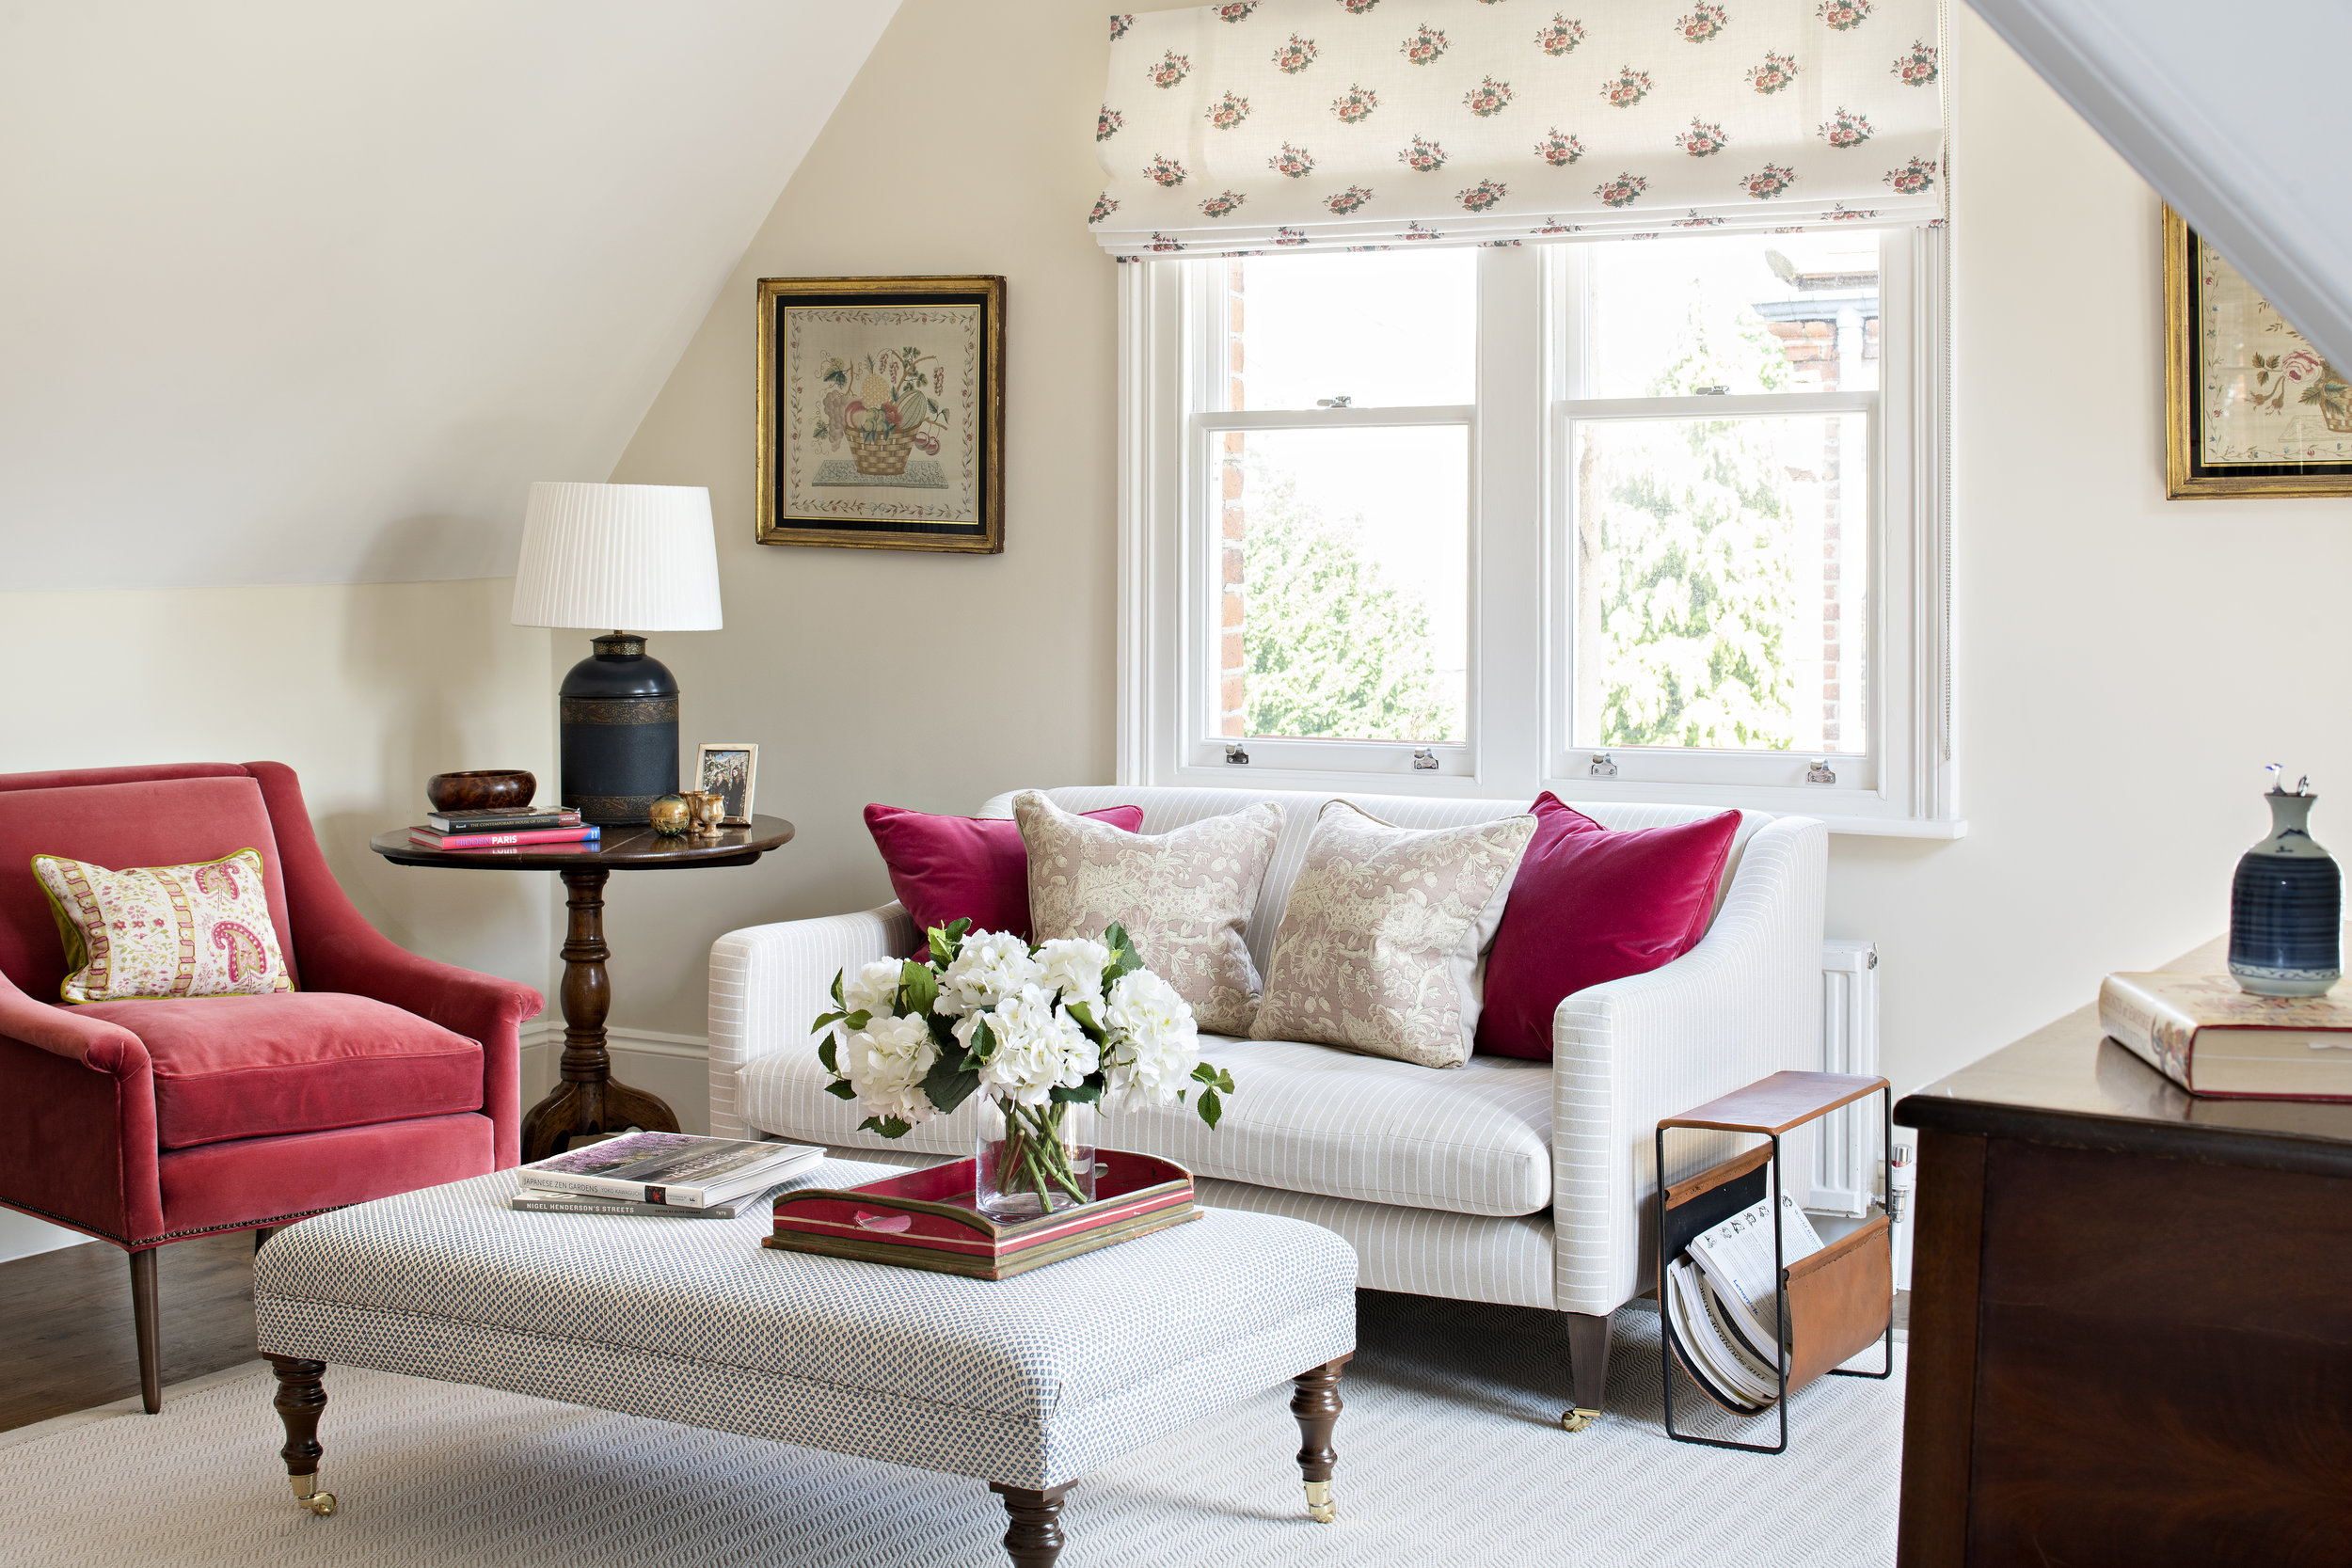 Upholstery - We work with a number of upholsterers which allows us to deliver to differing budgets. In the past we have created bespoke sofas, chairs, Ottomans, headboards and beds as either one-off commissions or as part of a project.